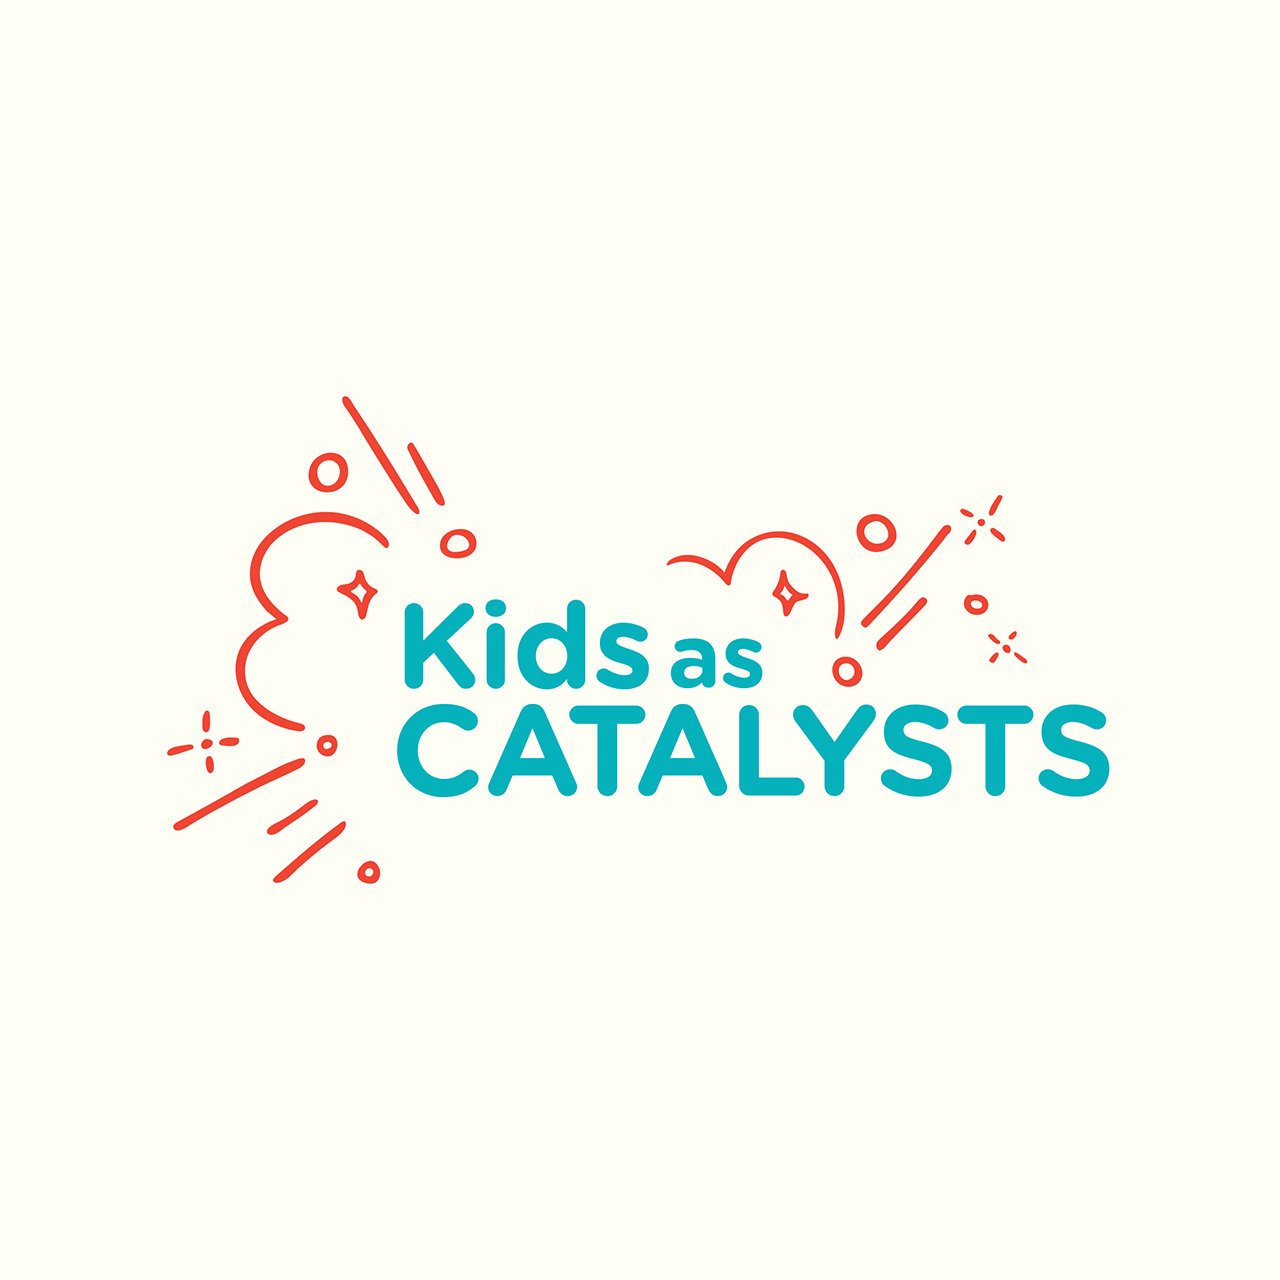 Kids as catalysts logo without tagline